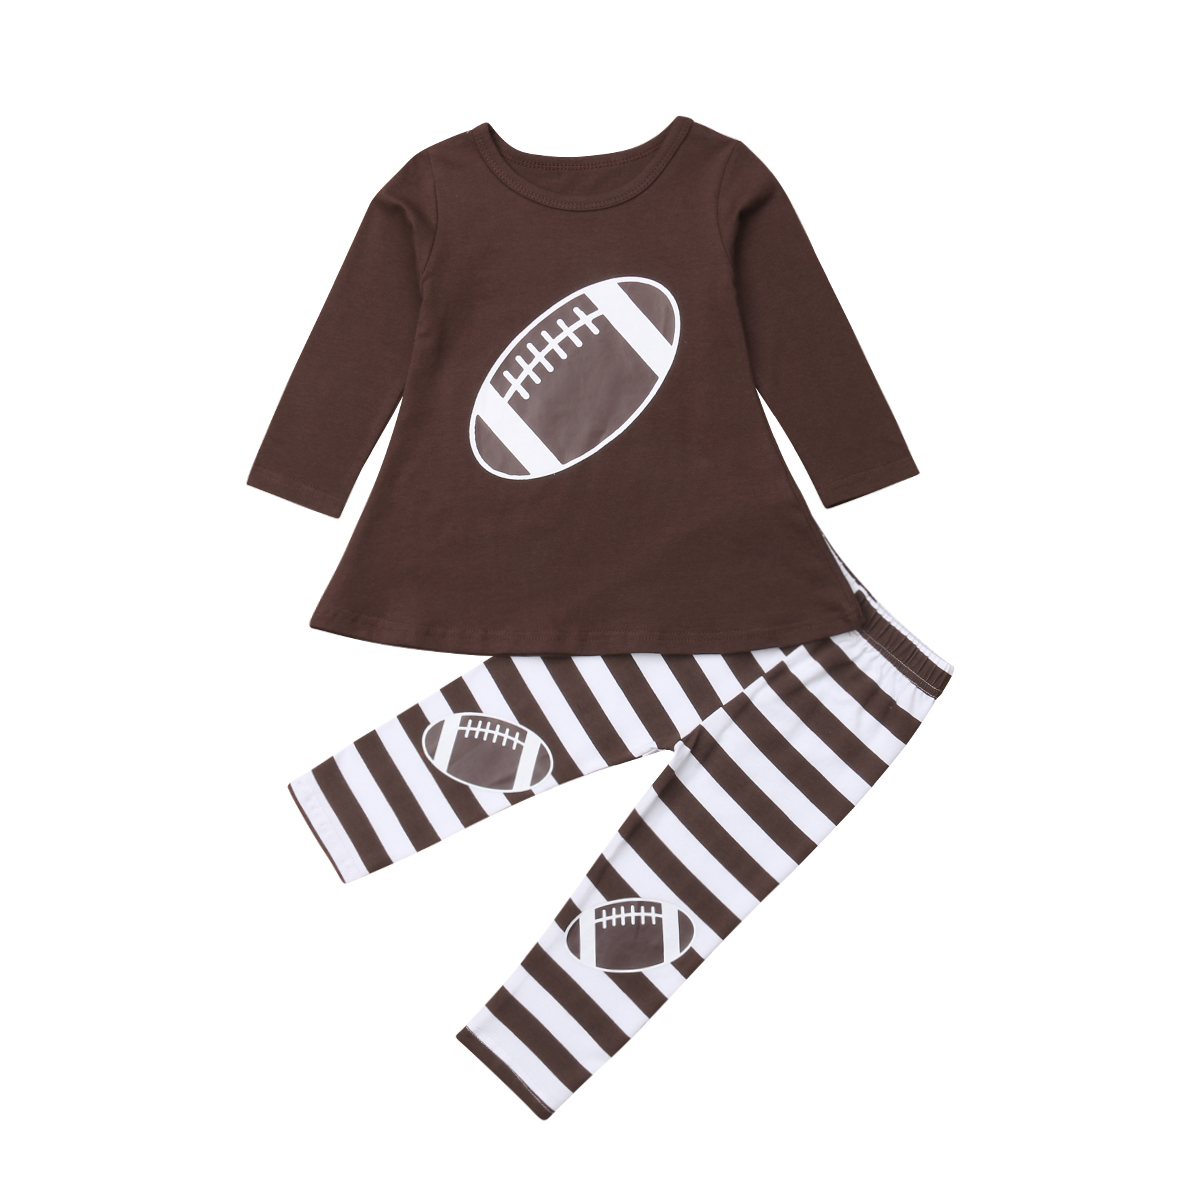 Love is Volleyball Childrens Girls Short Sleeve Ruffles Shirt T-Shirt for 2-6 Toddlers